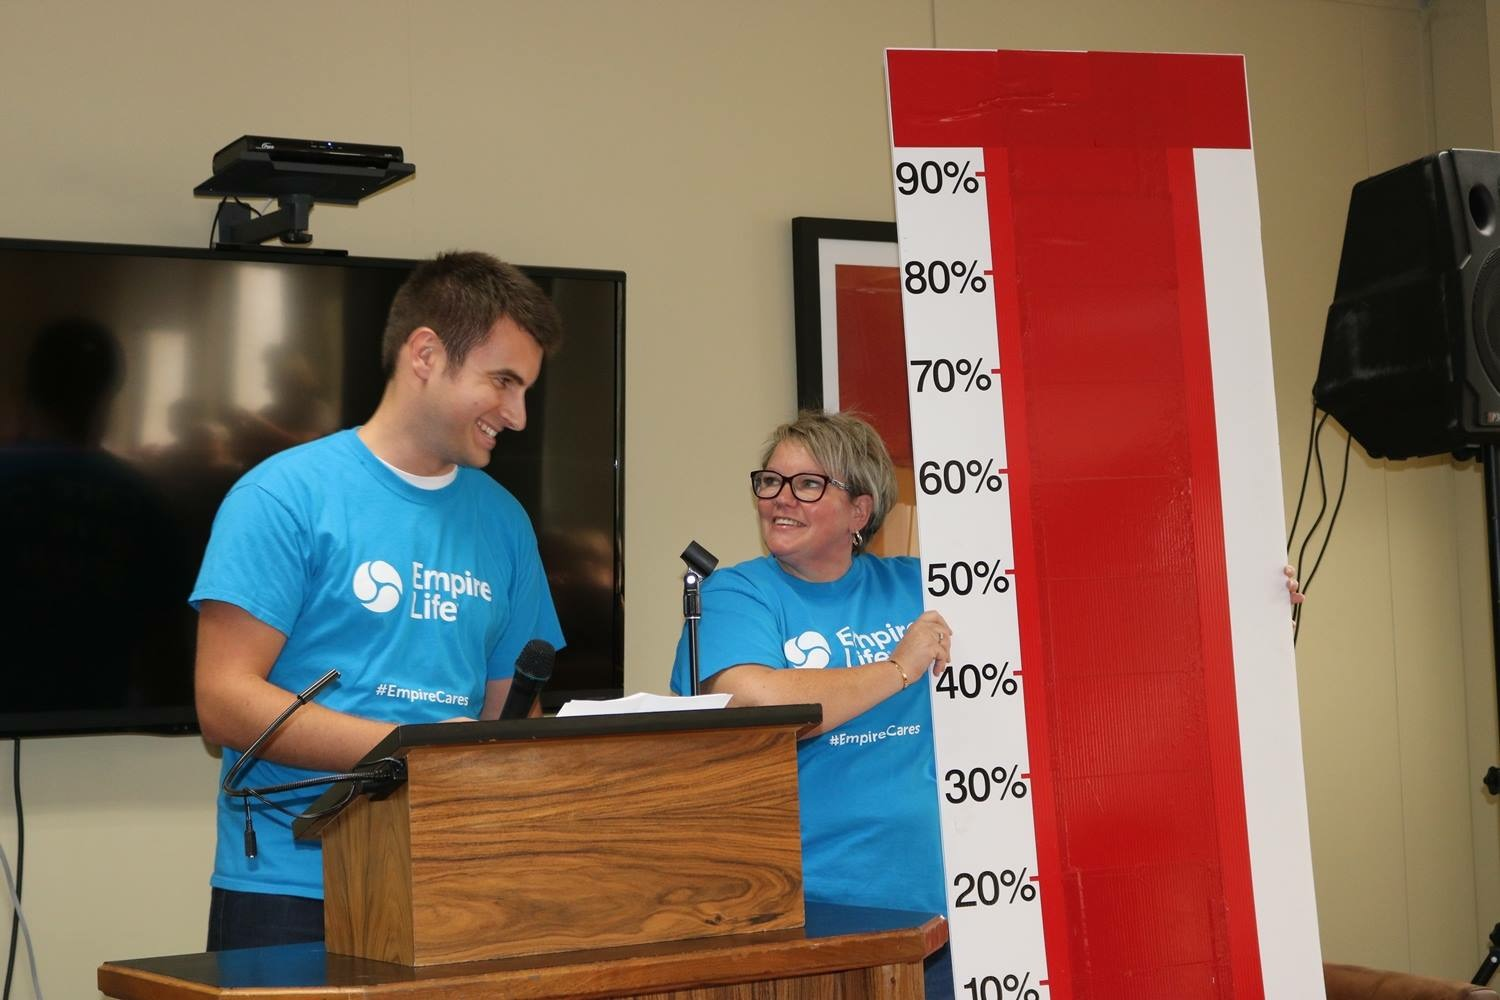 Empire Life co-chairs Ian Alexander and Karen Swain reveal the thermometer surpassing our goal